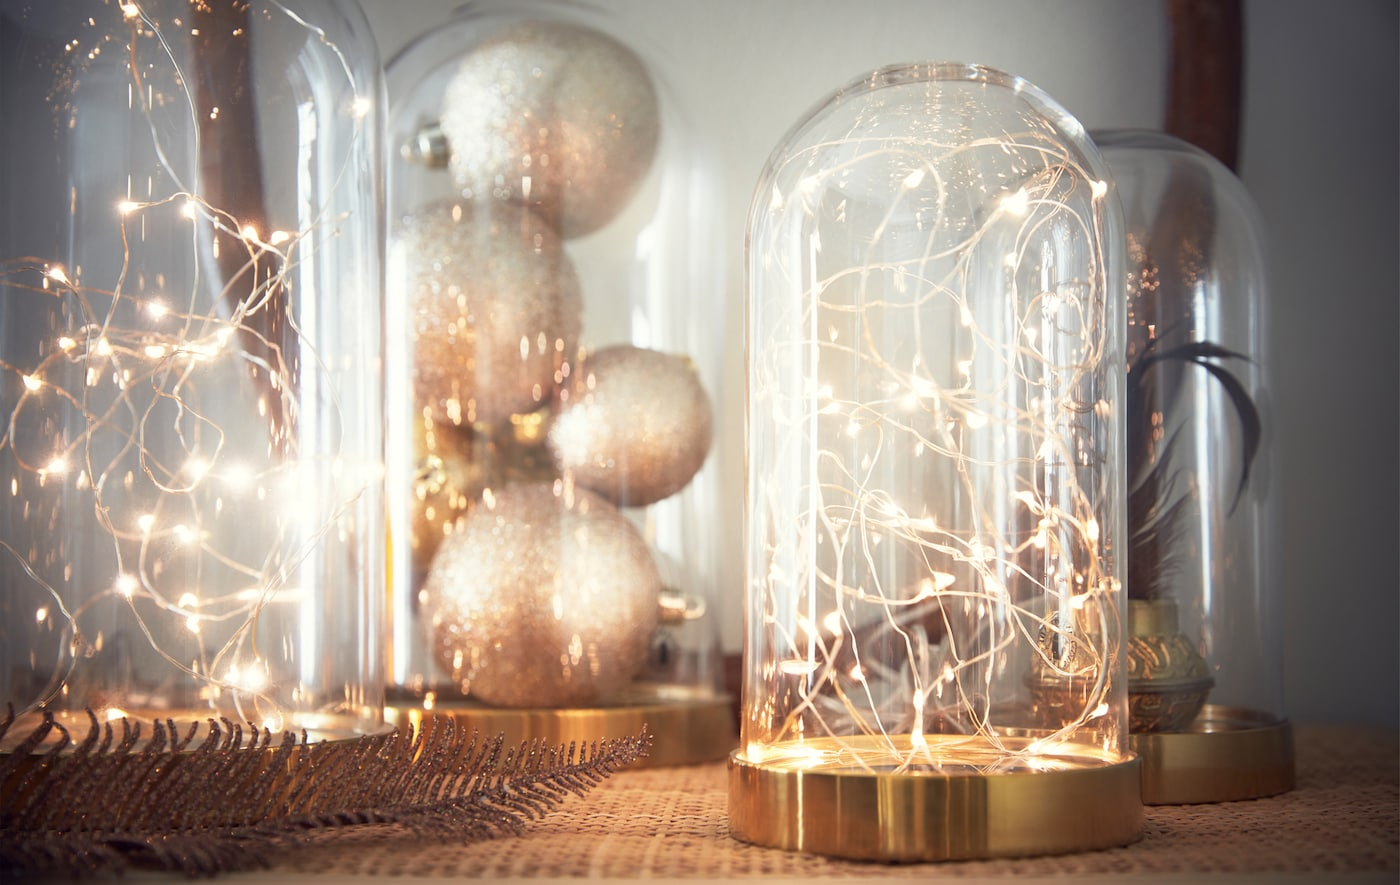 Arrange a delicate, battery powered light chain inside a decorative glass dome.